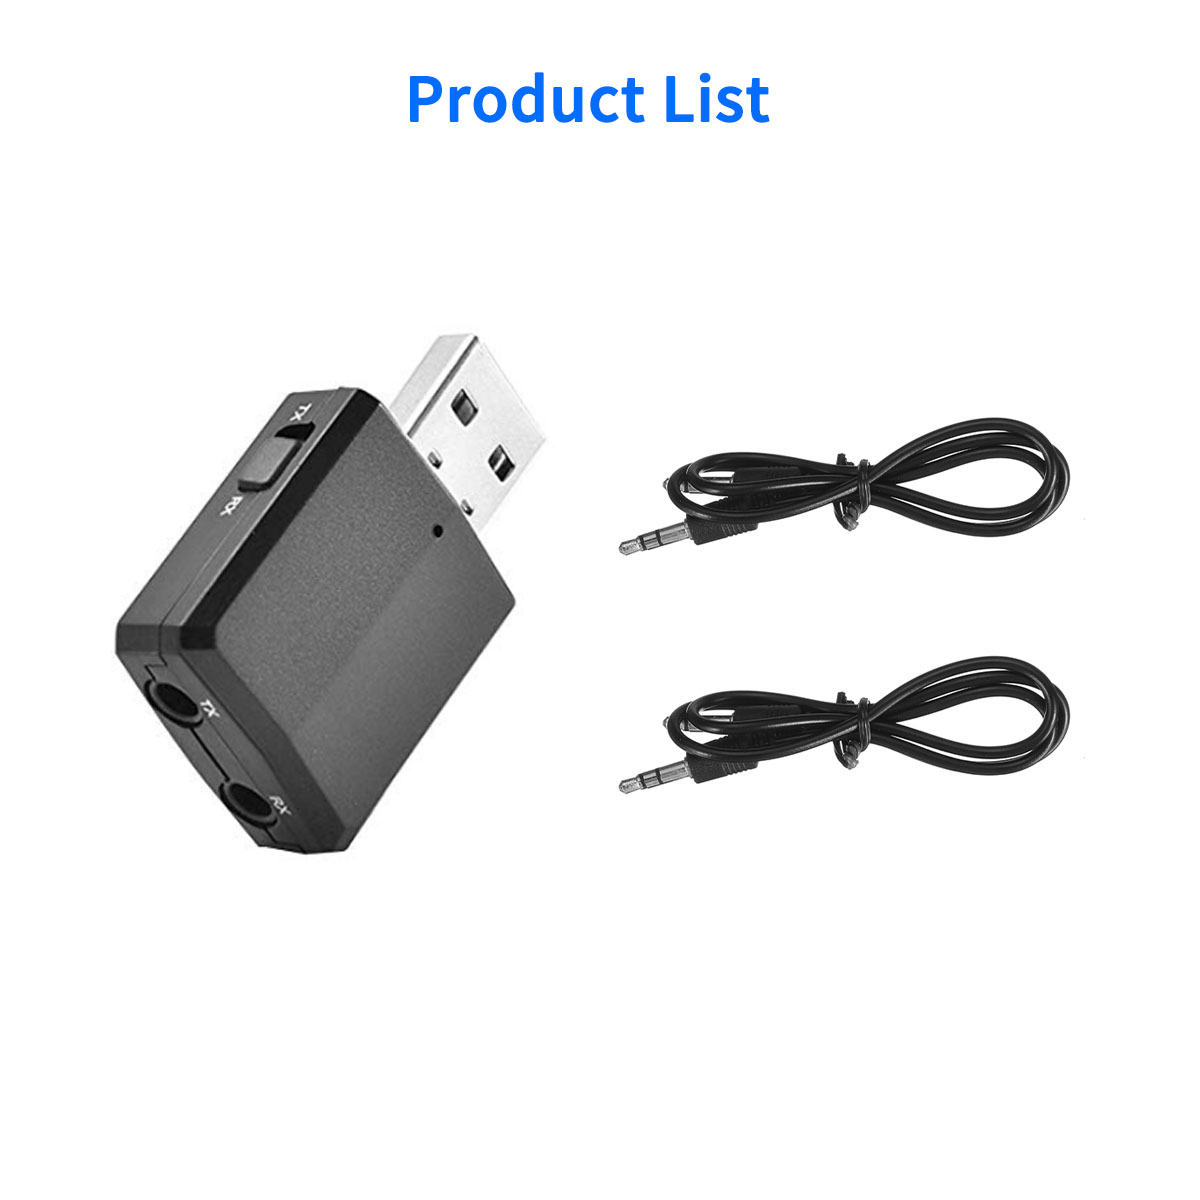 iMars ZF-169 Black bluetooth 5.0 3-In-1 Audio Wireless Receiver Transmitter Stereo AUX RCA USB 3.5mm Jack For TV PC Car Adapter Kit